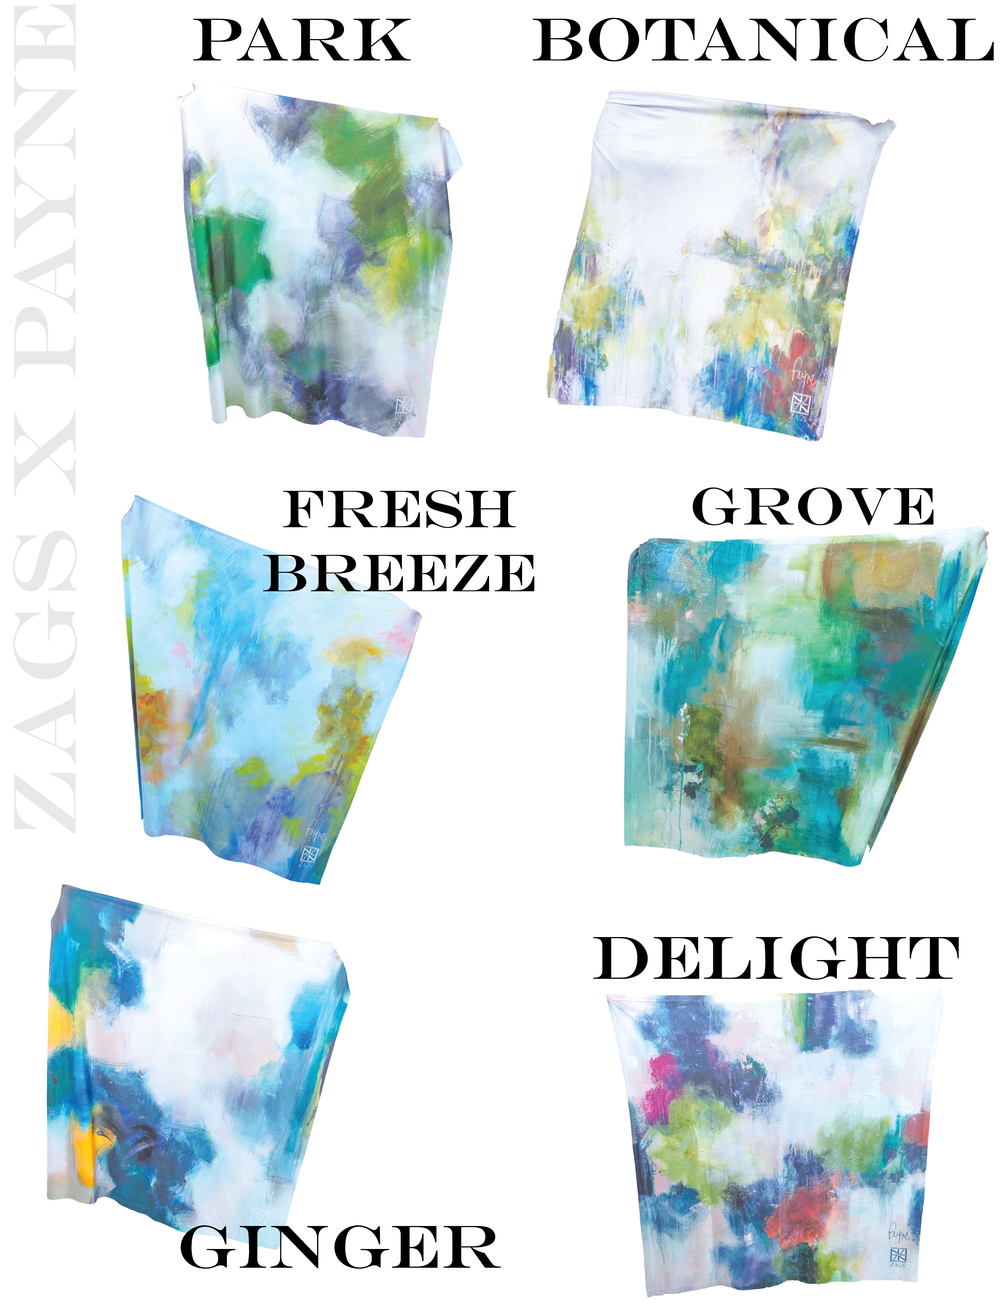 ZAGS teamed up with Atlanta's own abstract fine artist Melissa Payne Baker to create this collection of ZAGS lovely brush stroke patterns!